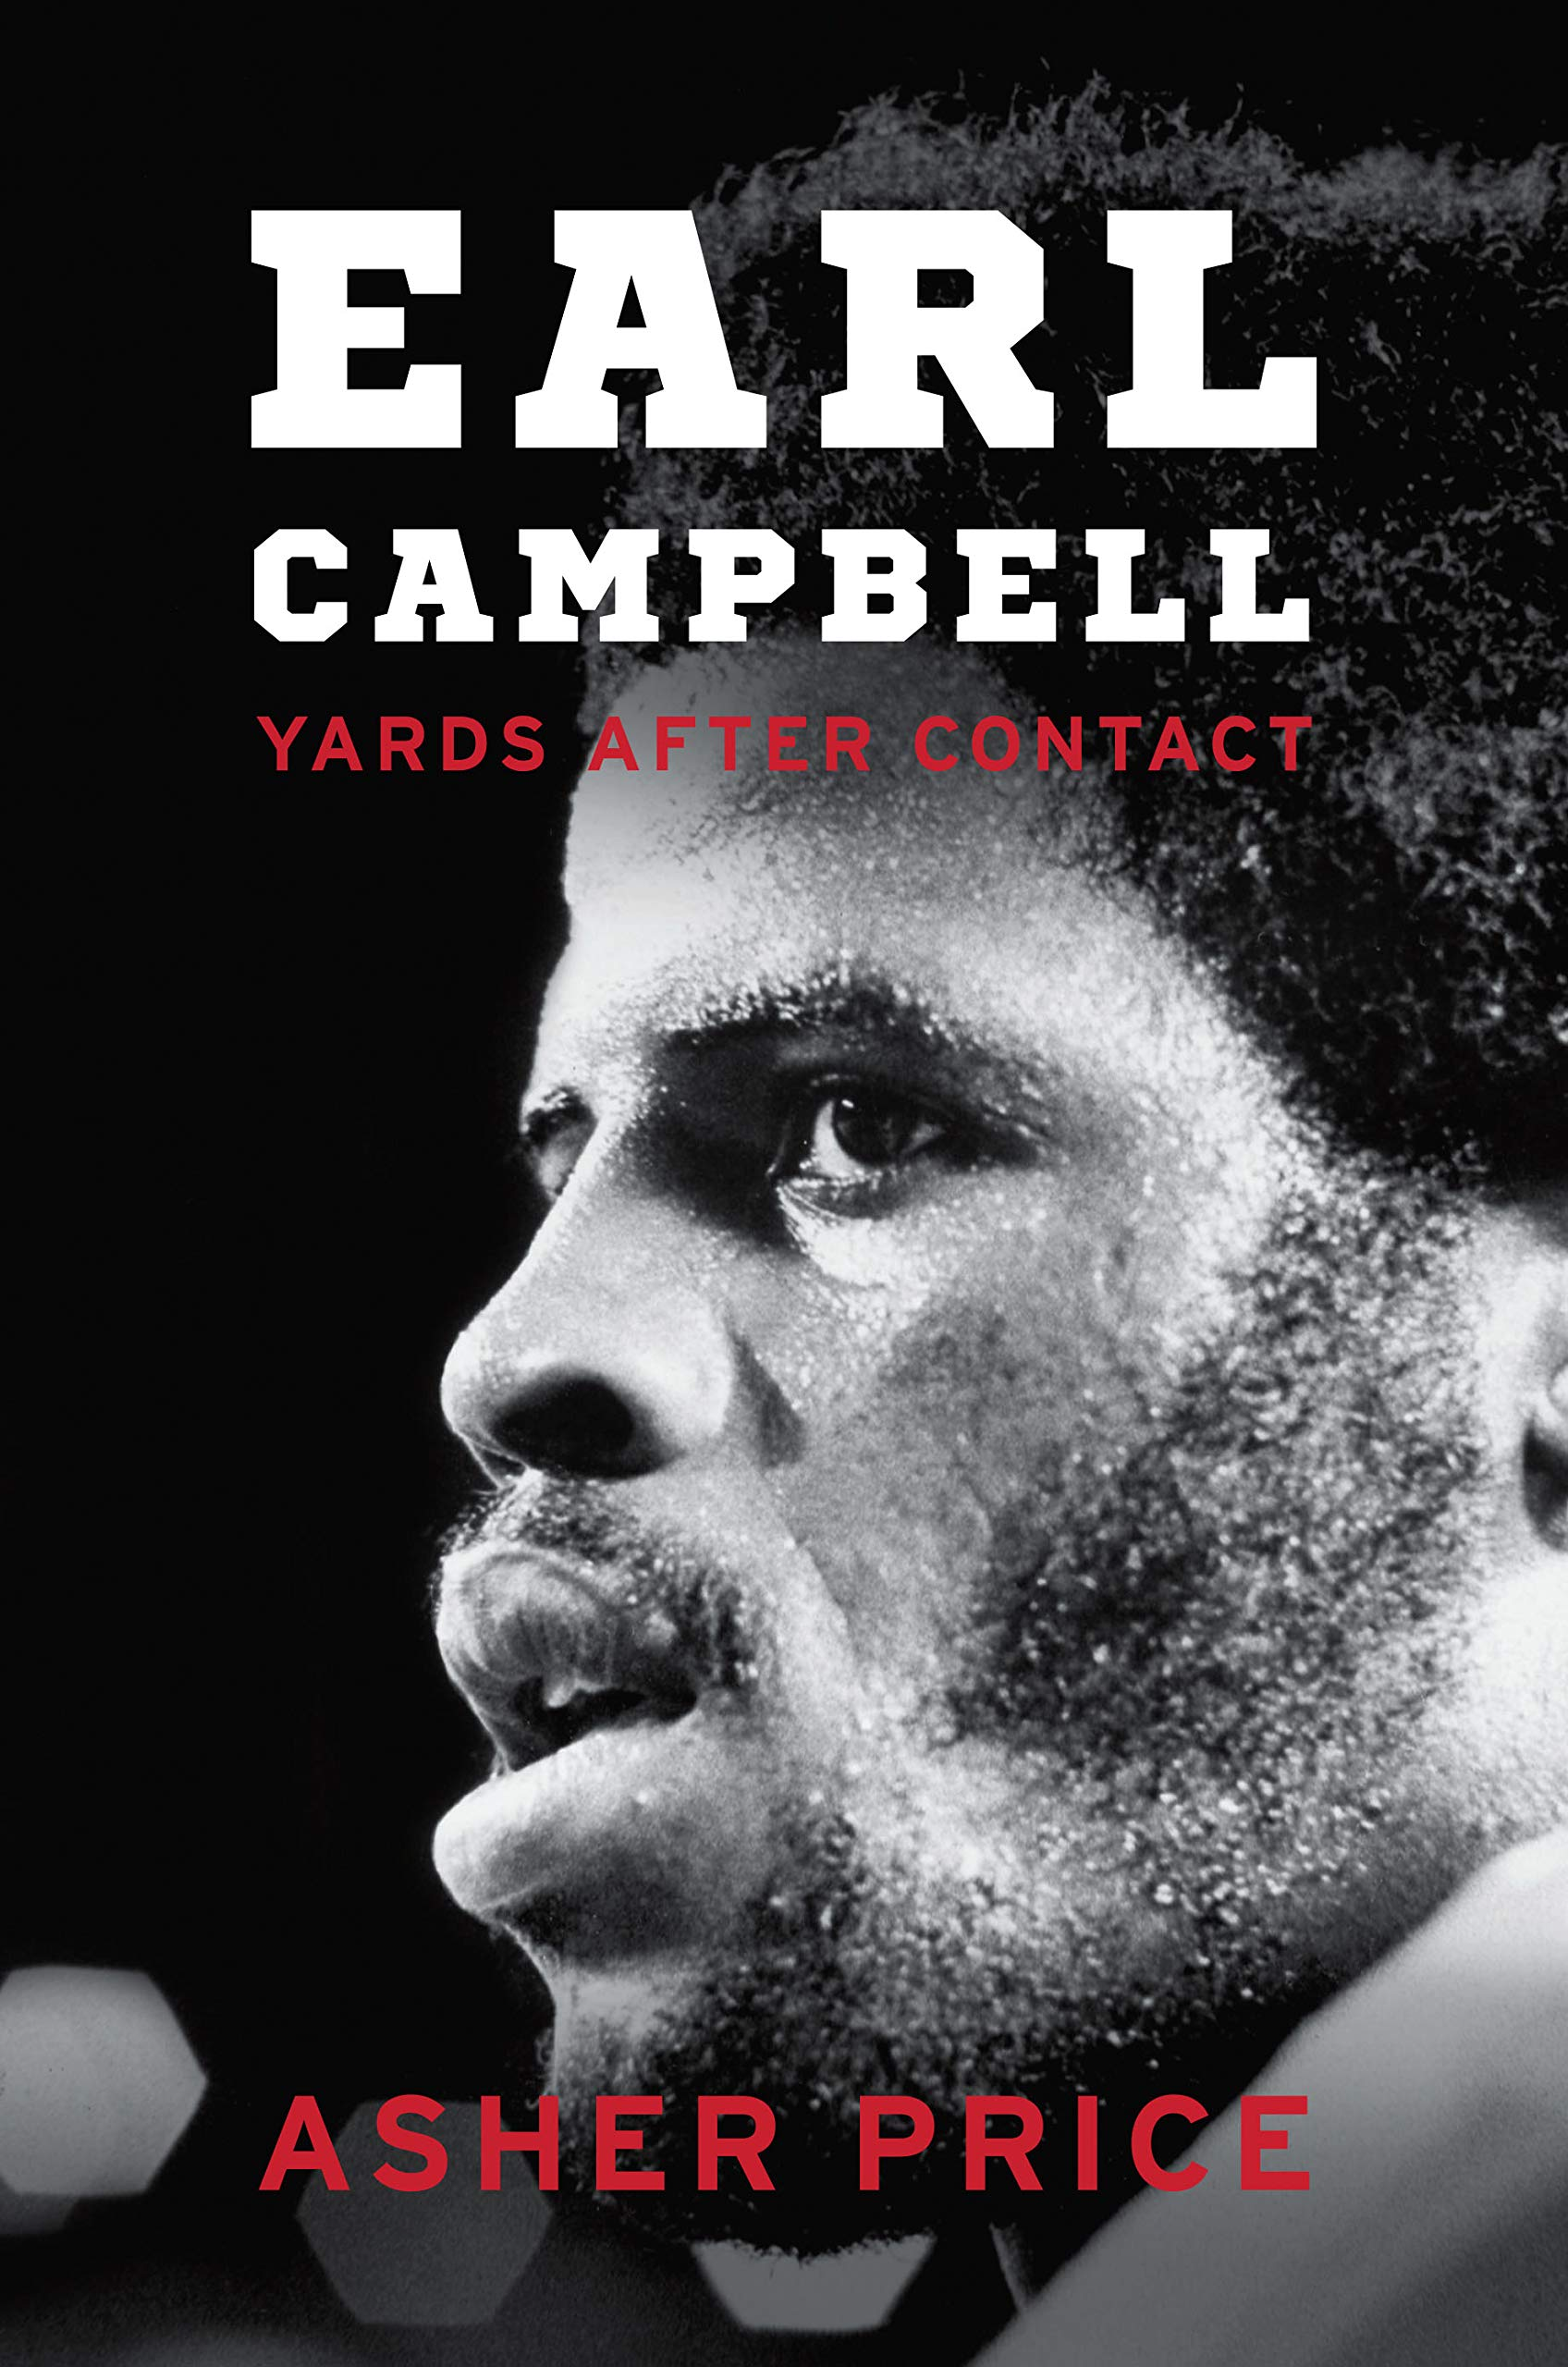 Earl Campbell: Yards After Contact